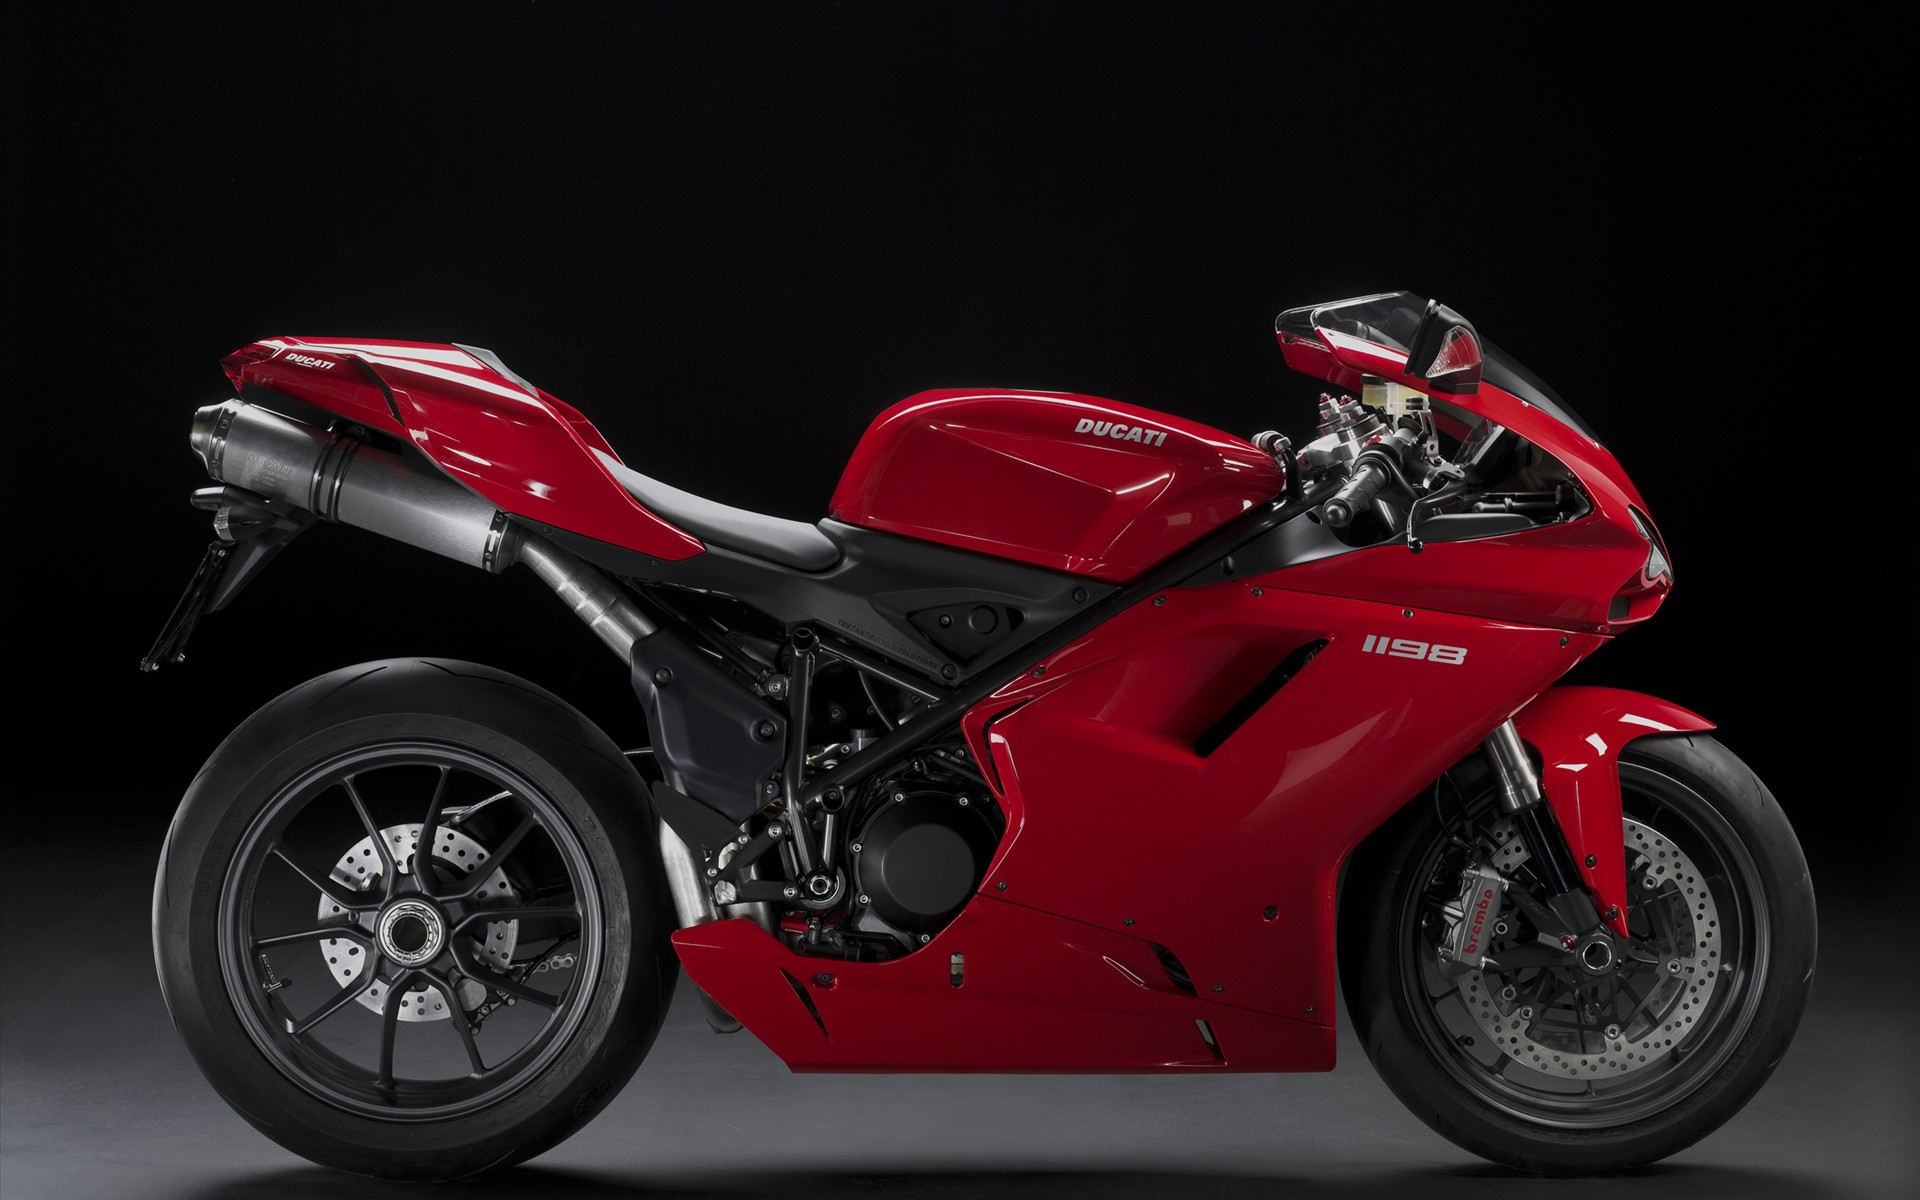 ducati superbike 1198 (red) hd wallpaper | wallpapers.gg